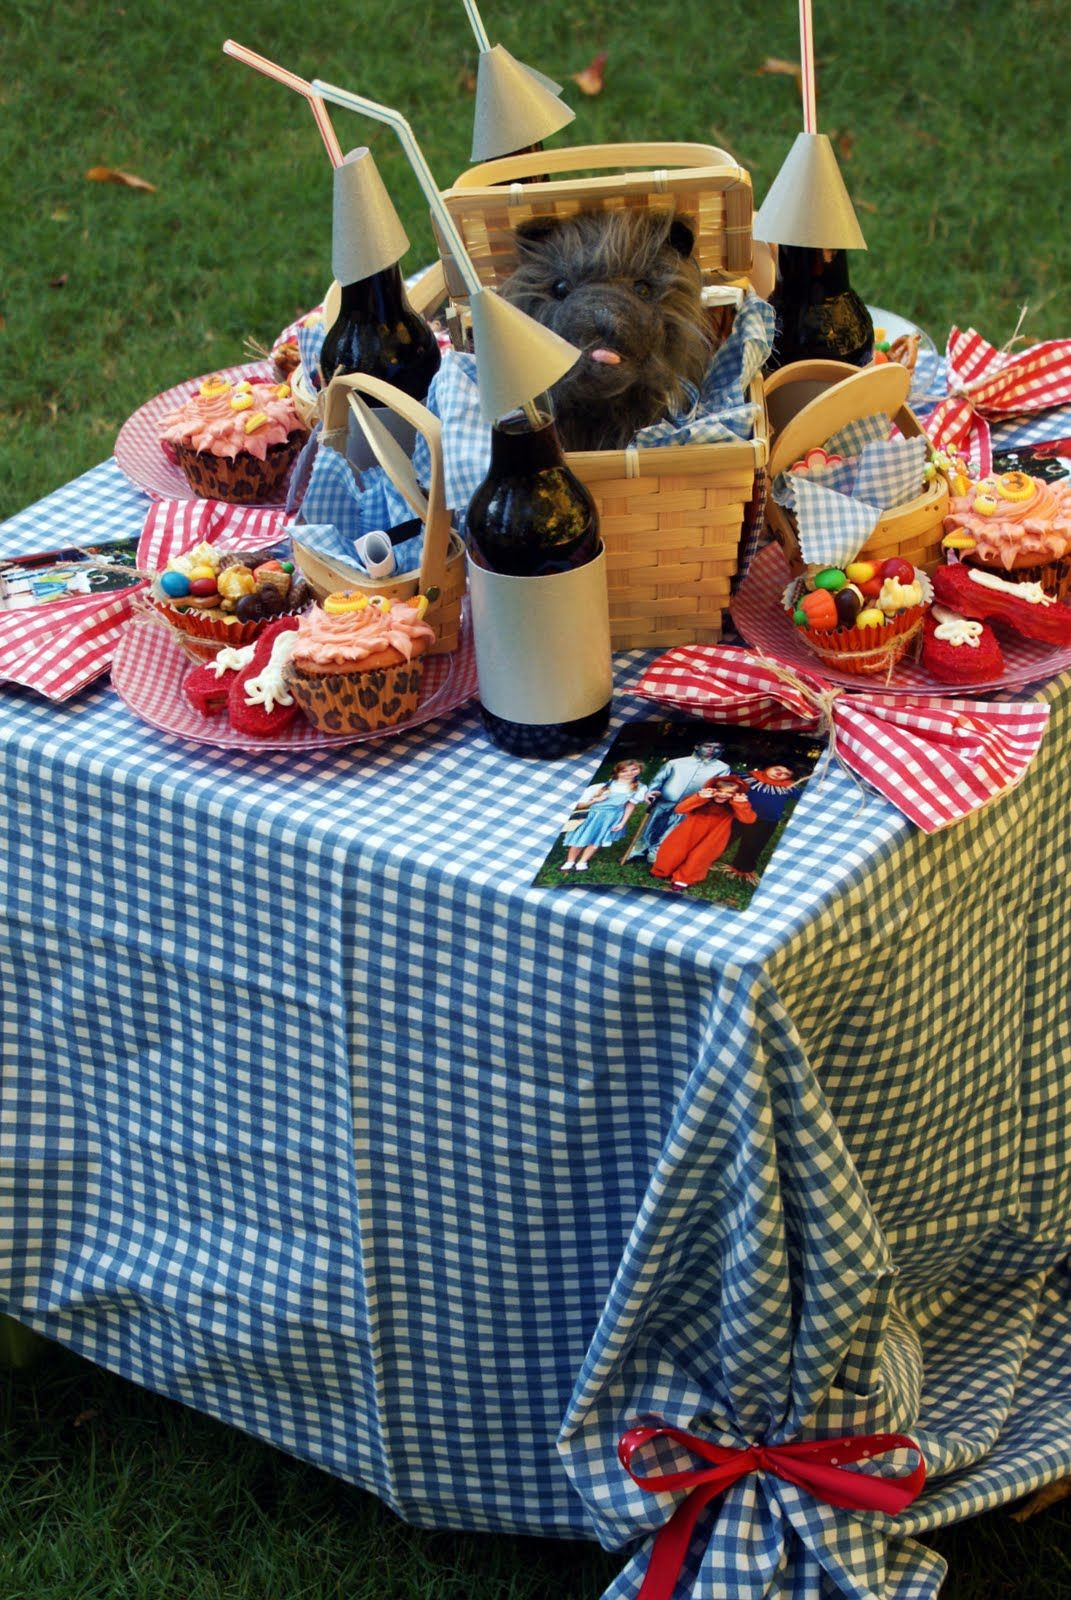 Wizard Of Oz Event Wizard Of Oz Wizard Of Oz Decor Party